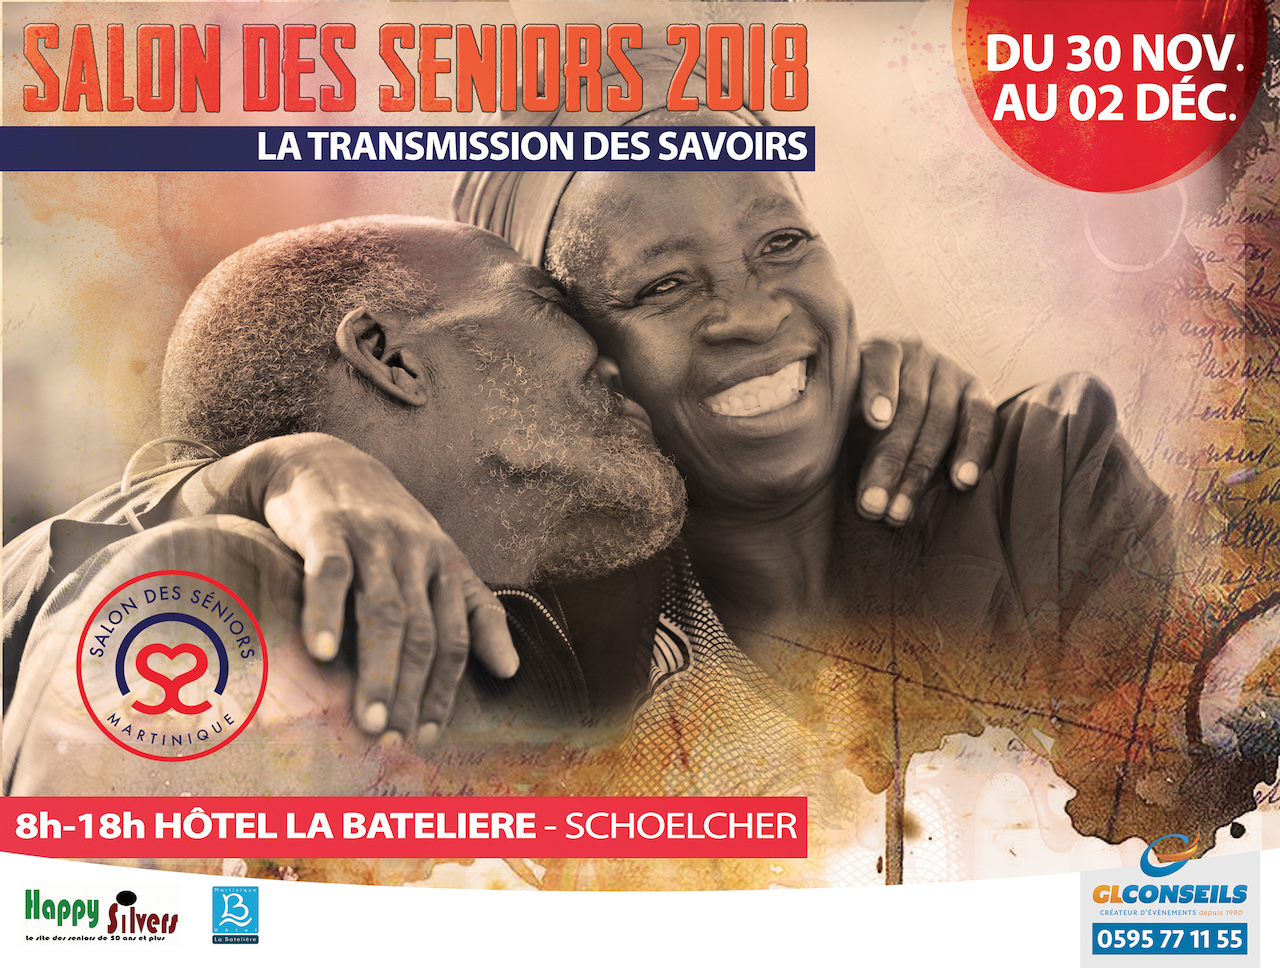 Salon des seniors en Martinique